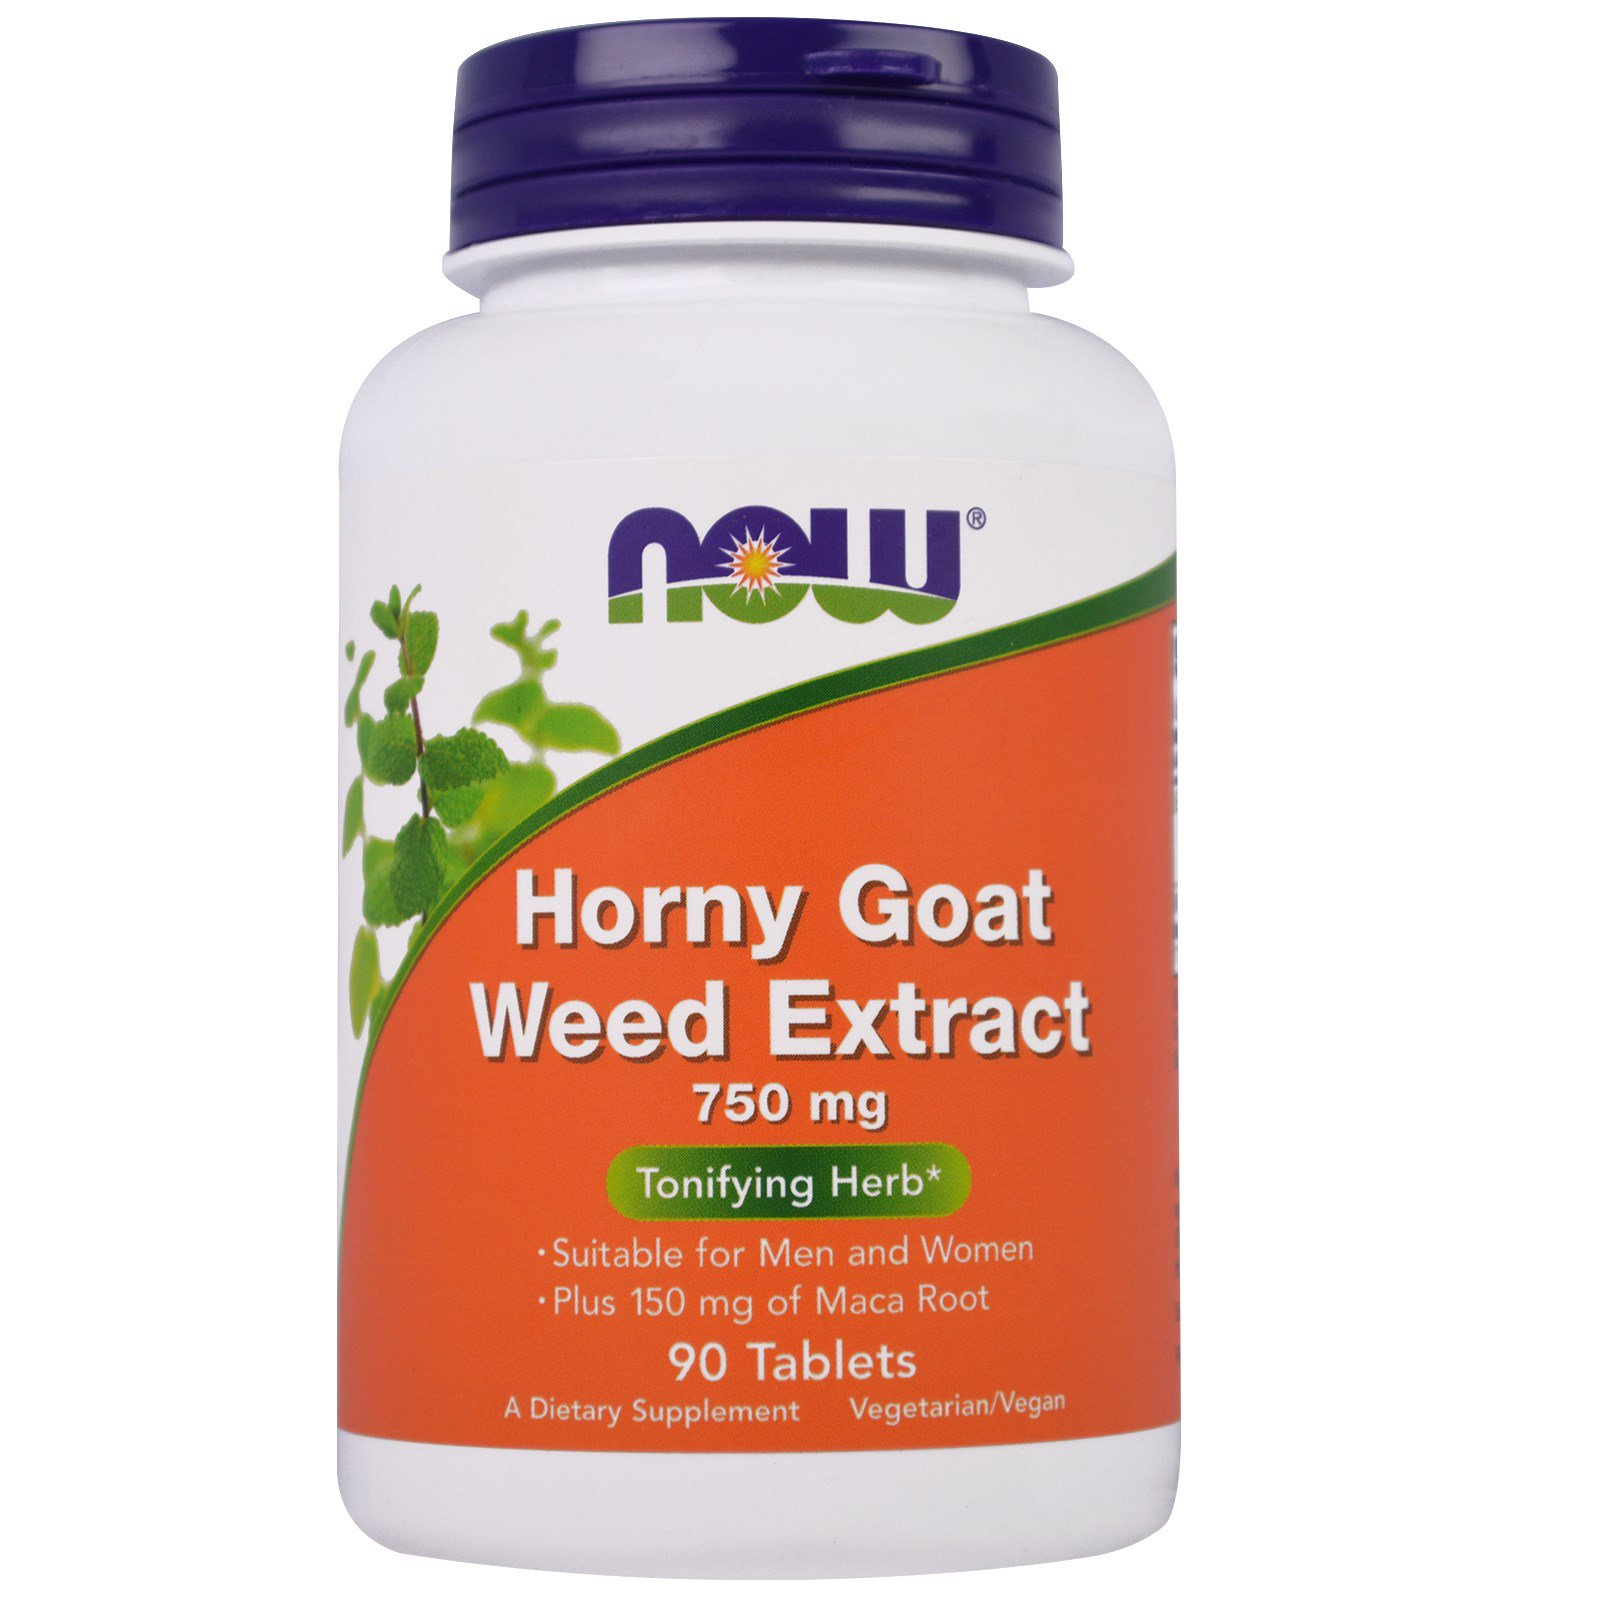 What does horny goat weed do to you